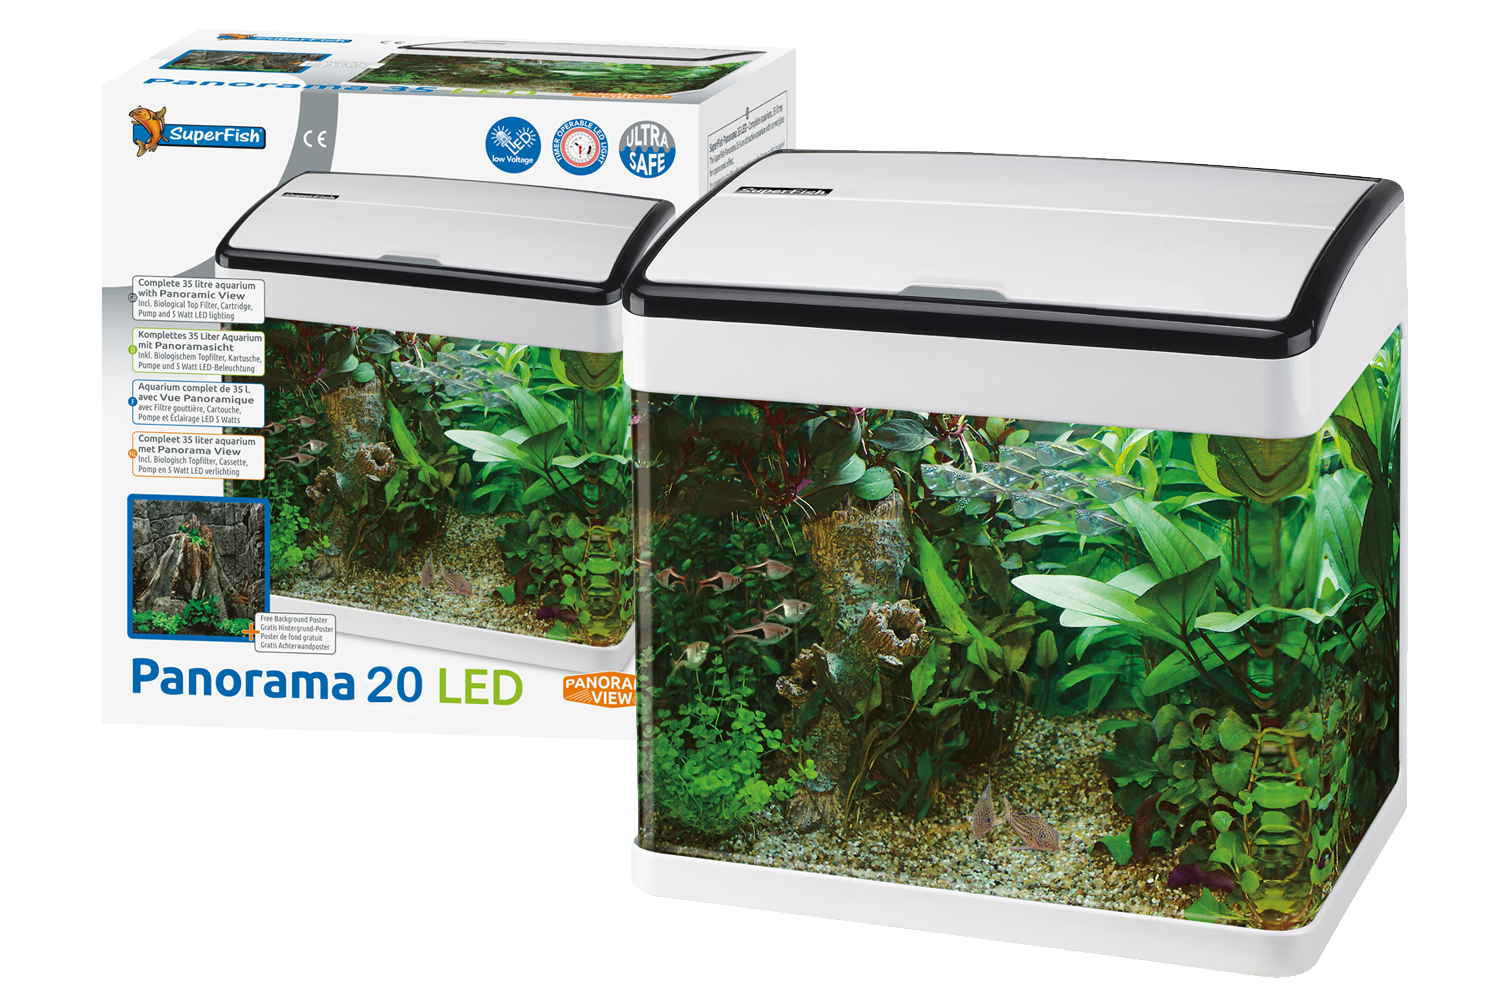 https://dierencompleet.nl/wp-content/uploads/Superfish-panorama-20-led-2-shop.jpg